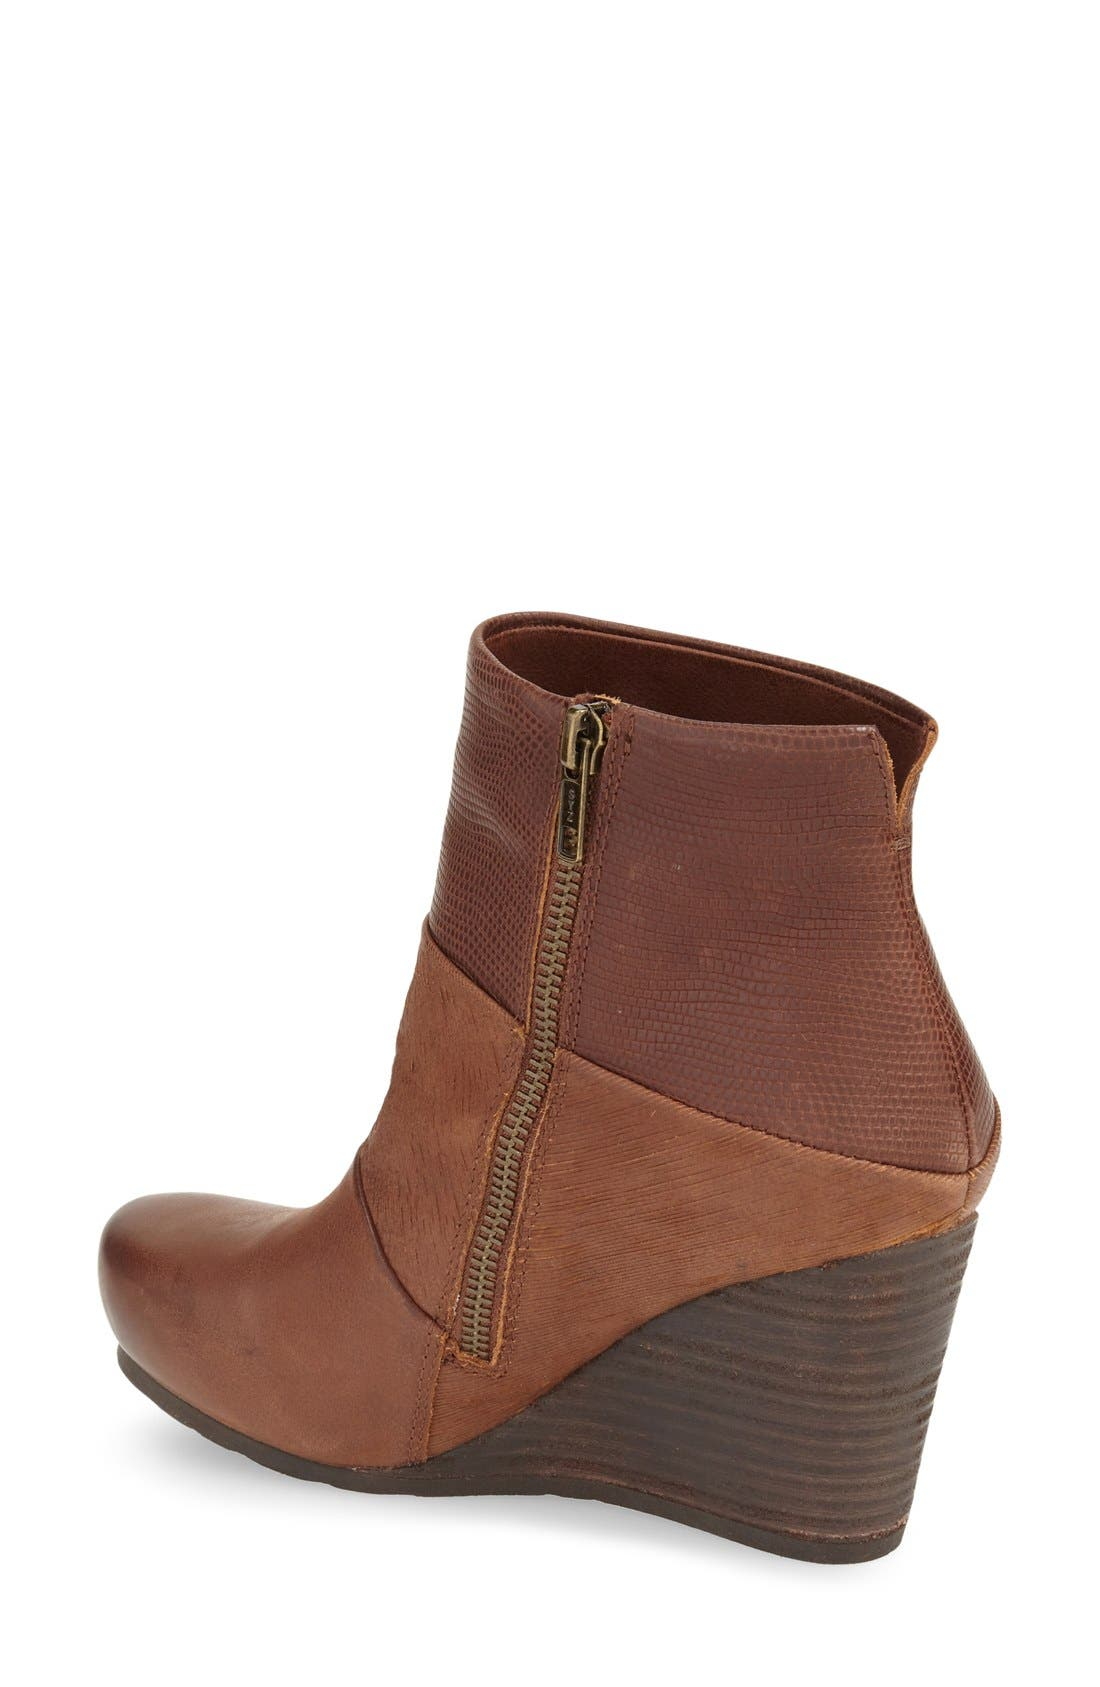 'Dharma' Wedge Bootie,                             Alternate thumbnail 2, color,                             Acorn Leather